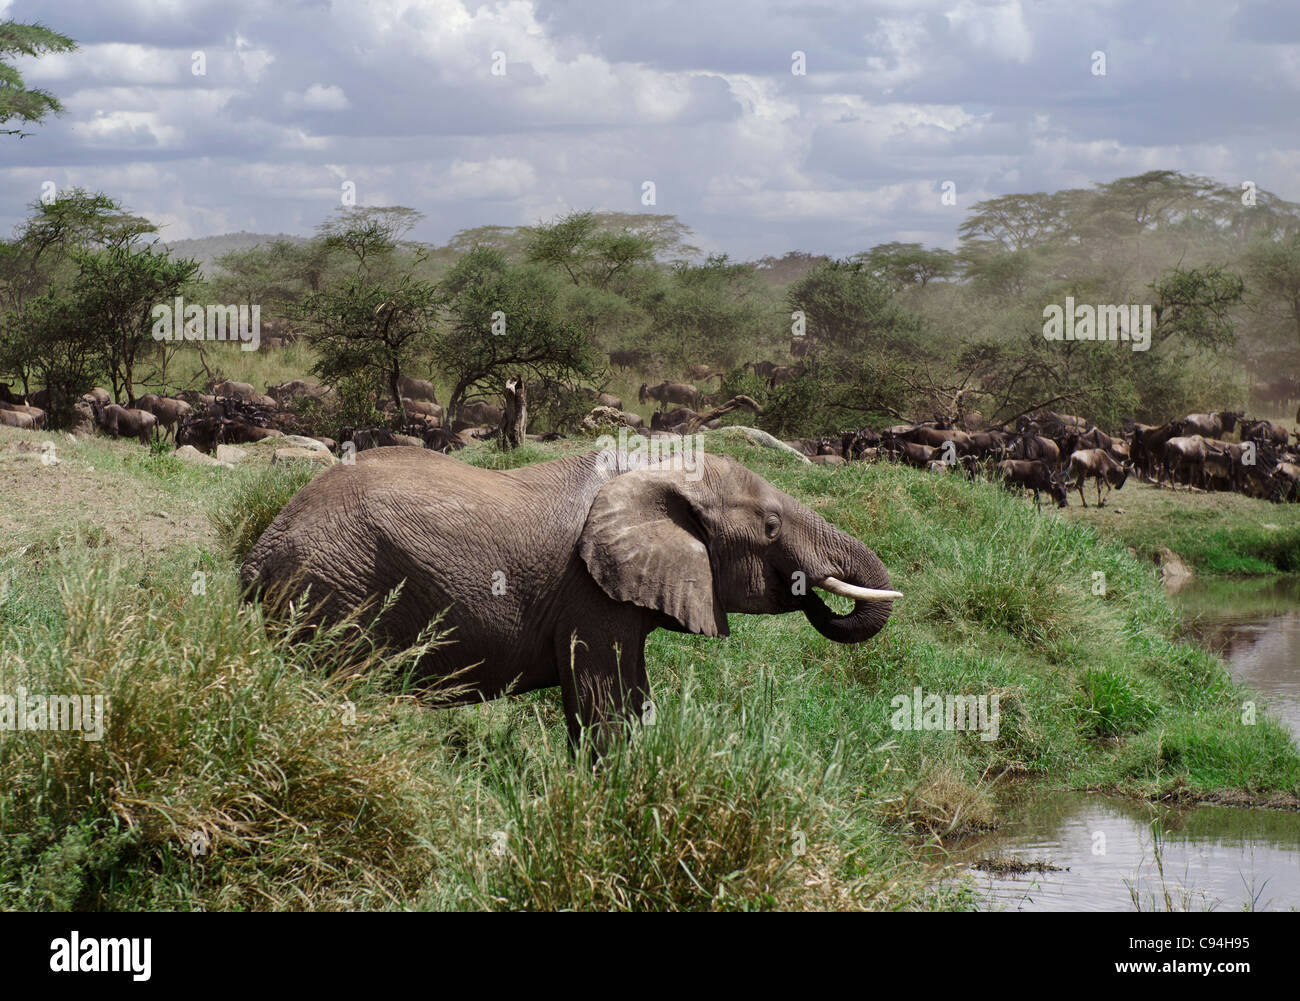 Elephant drinking in Serengeti National Park, Tanzania, Africa - Stock Image